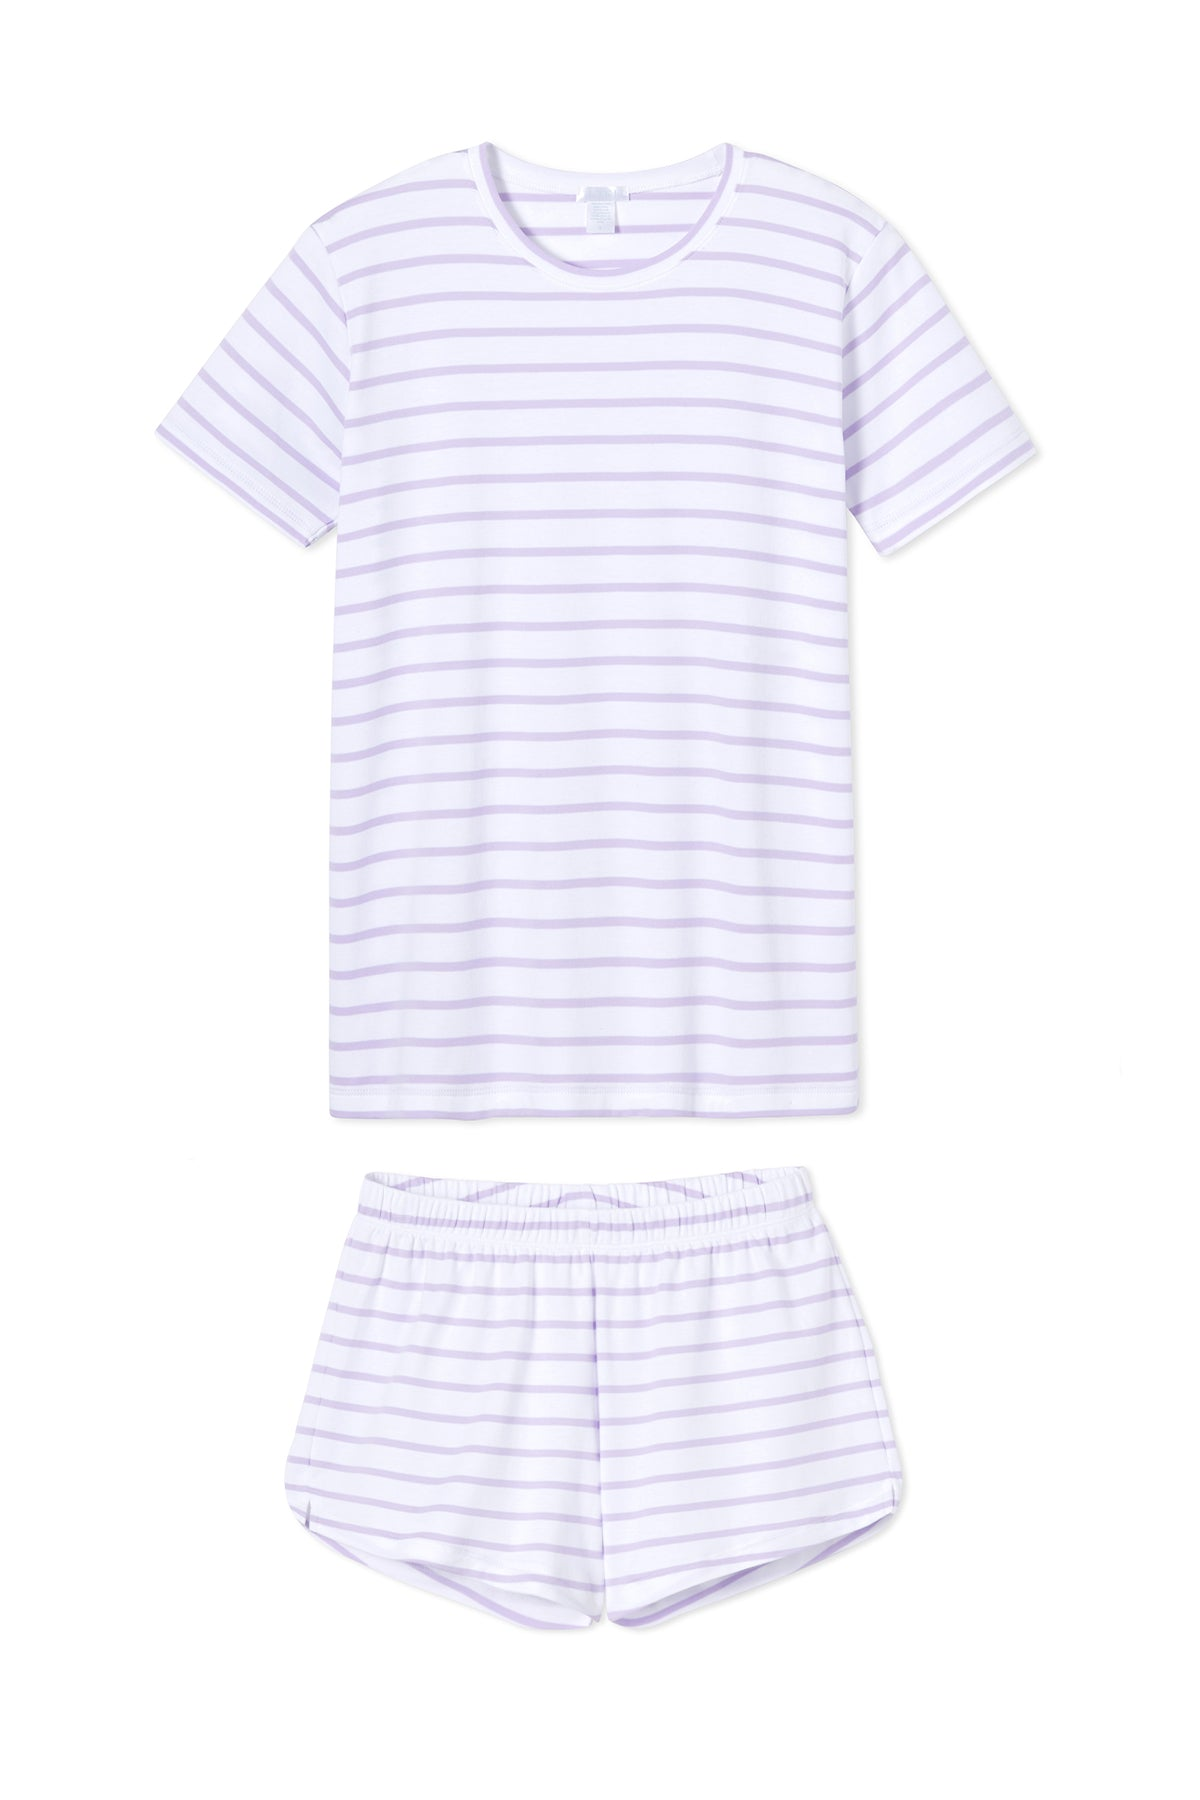 Pima Weekend Shorts Set in Lilac